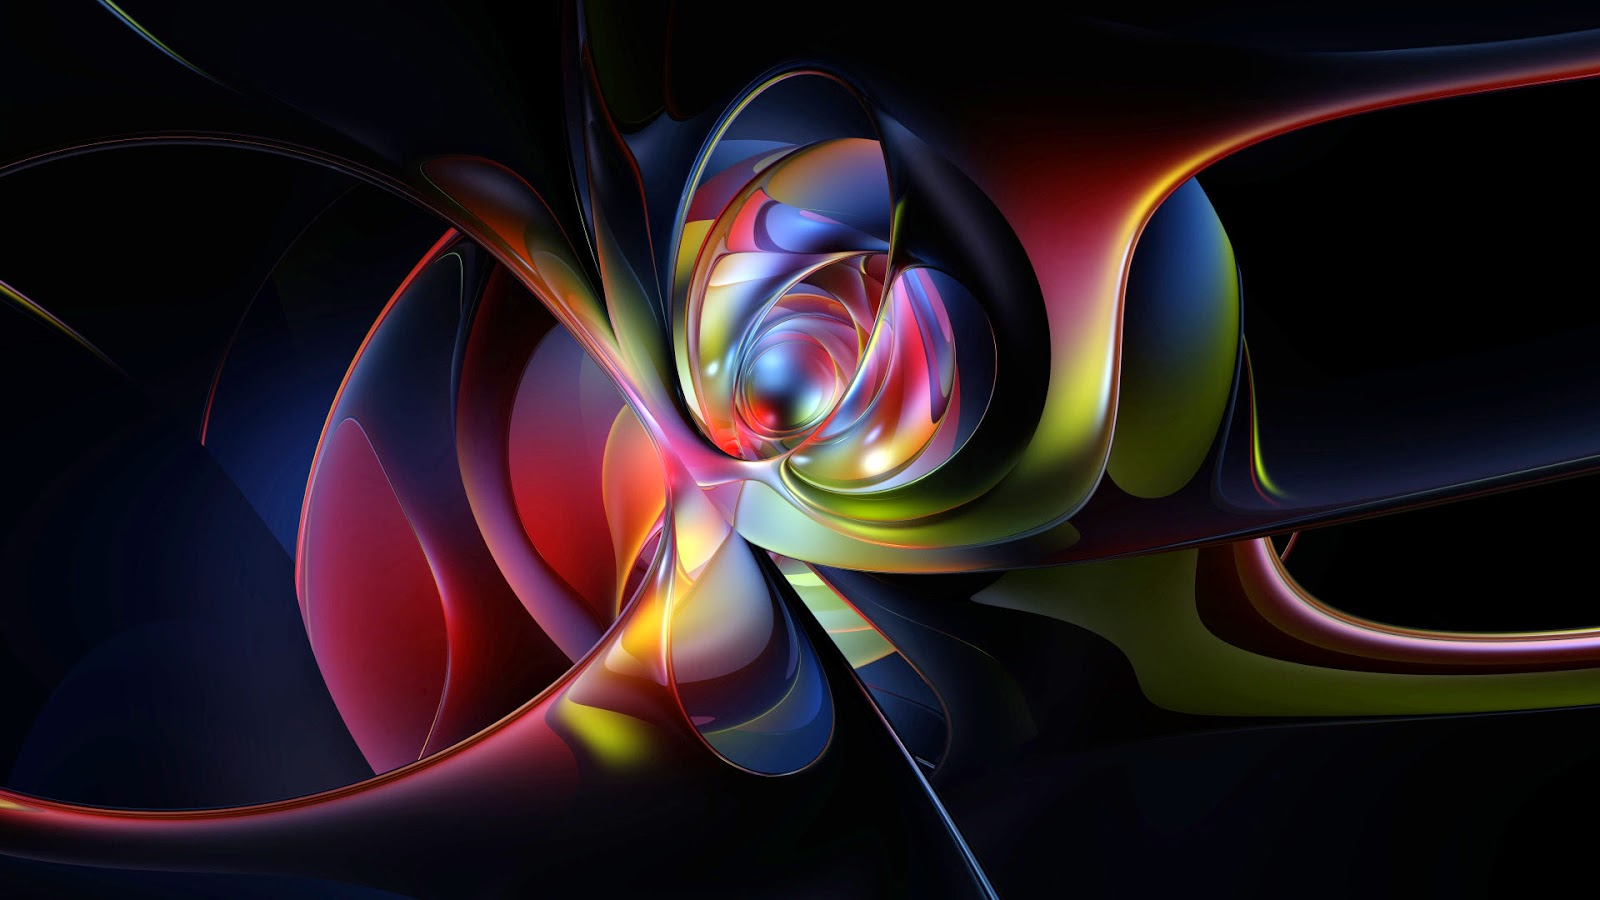 Design Abstract Wallpaper